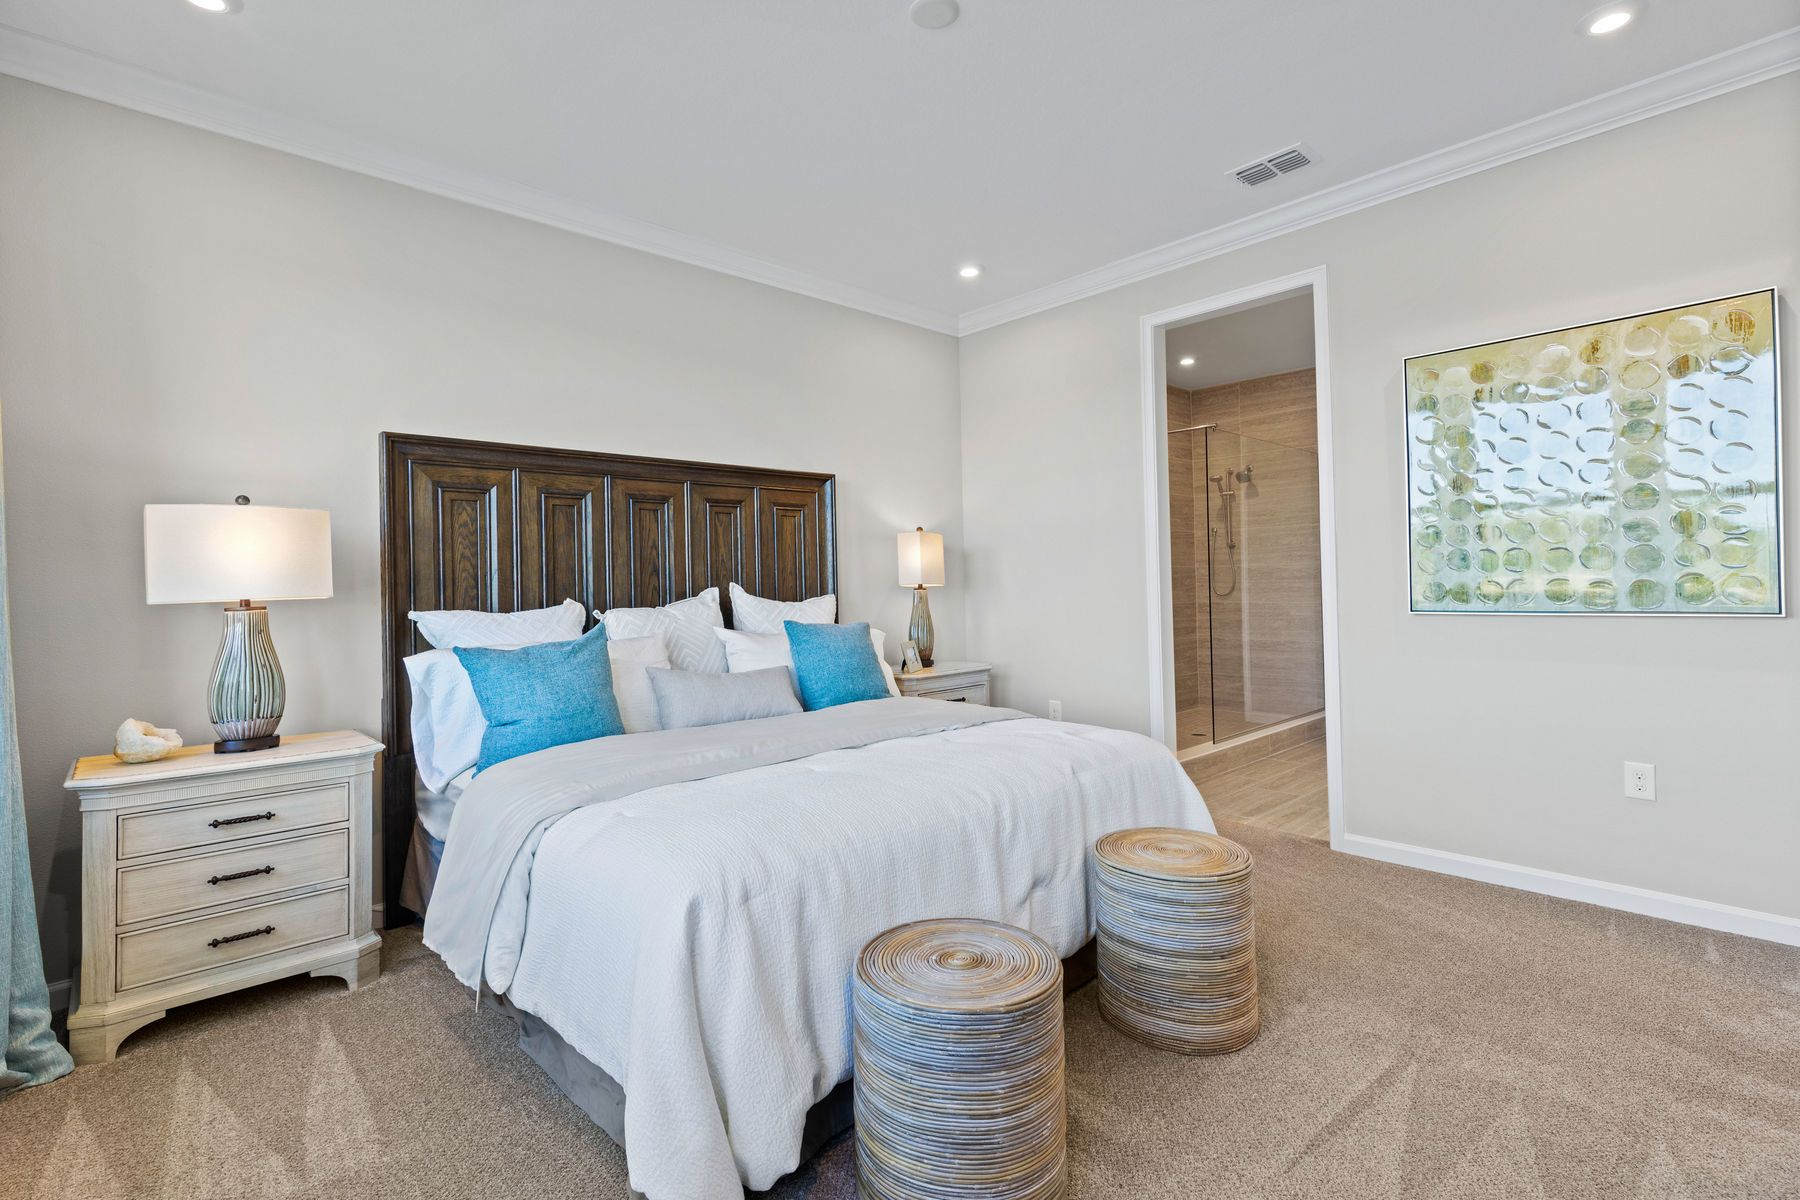 Bedroom featured in the Seabright By Mattamy Homes in Naples, FL